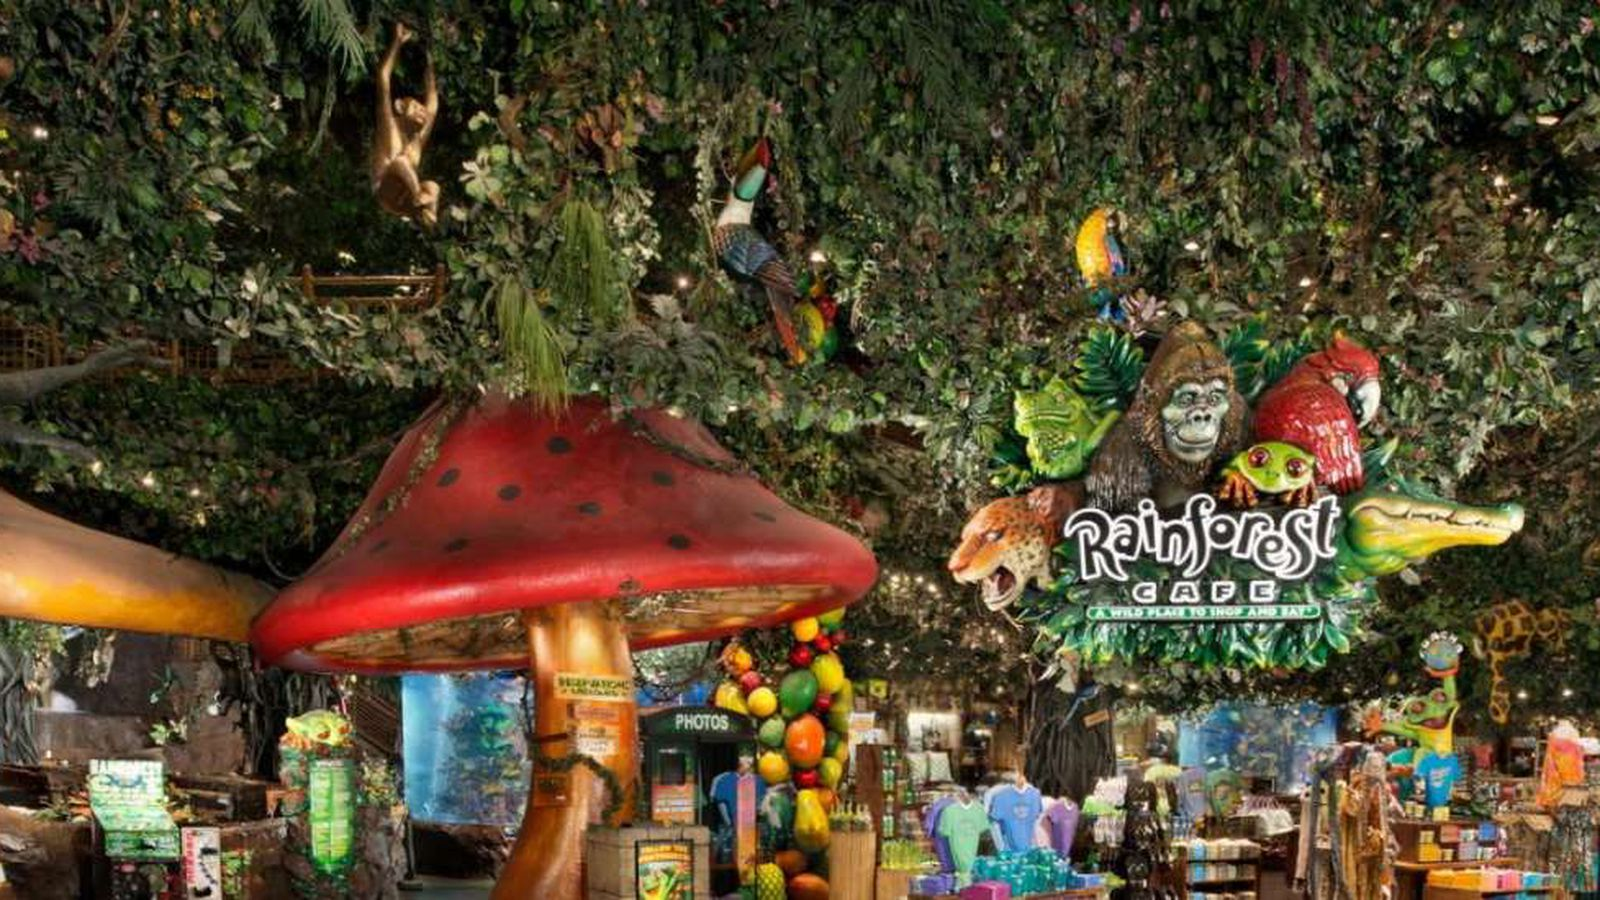 Rainforest Cafe San Francisco Birthday Party